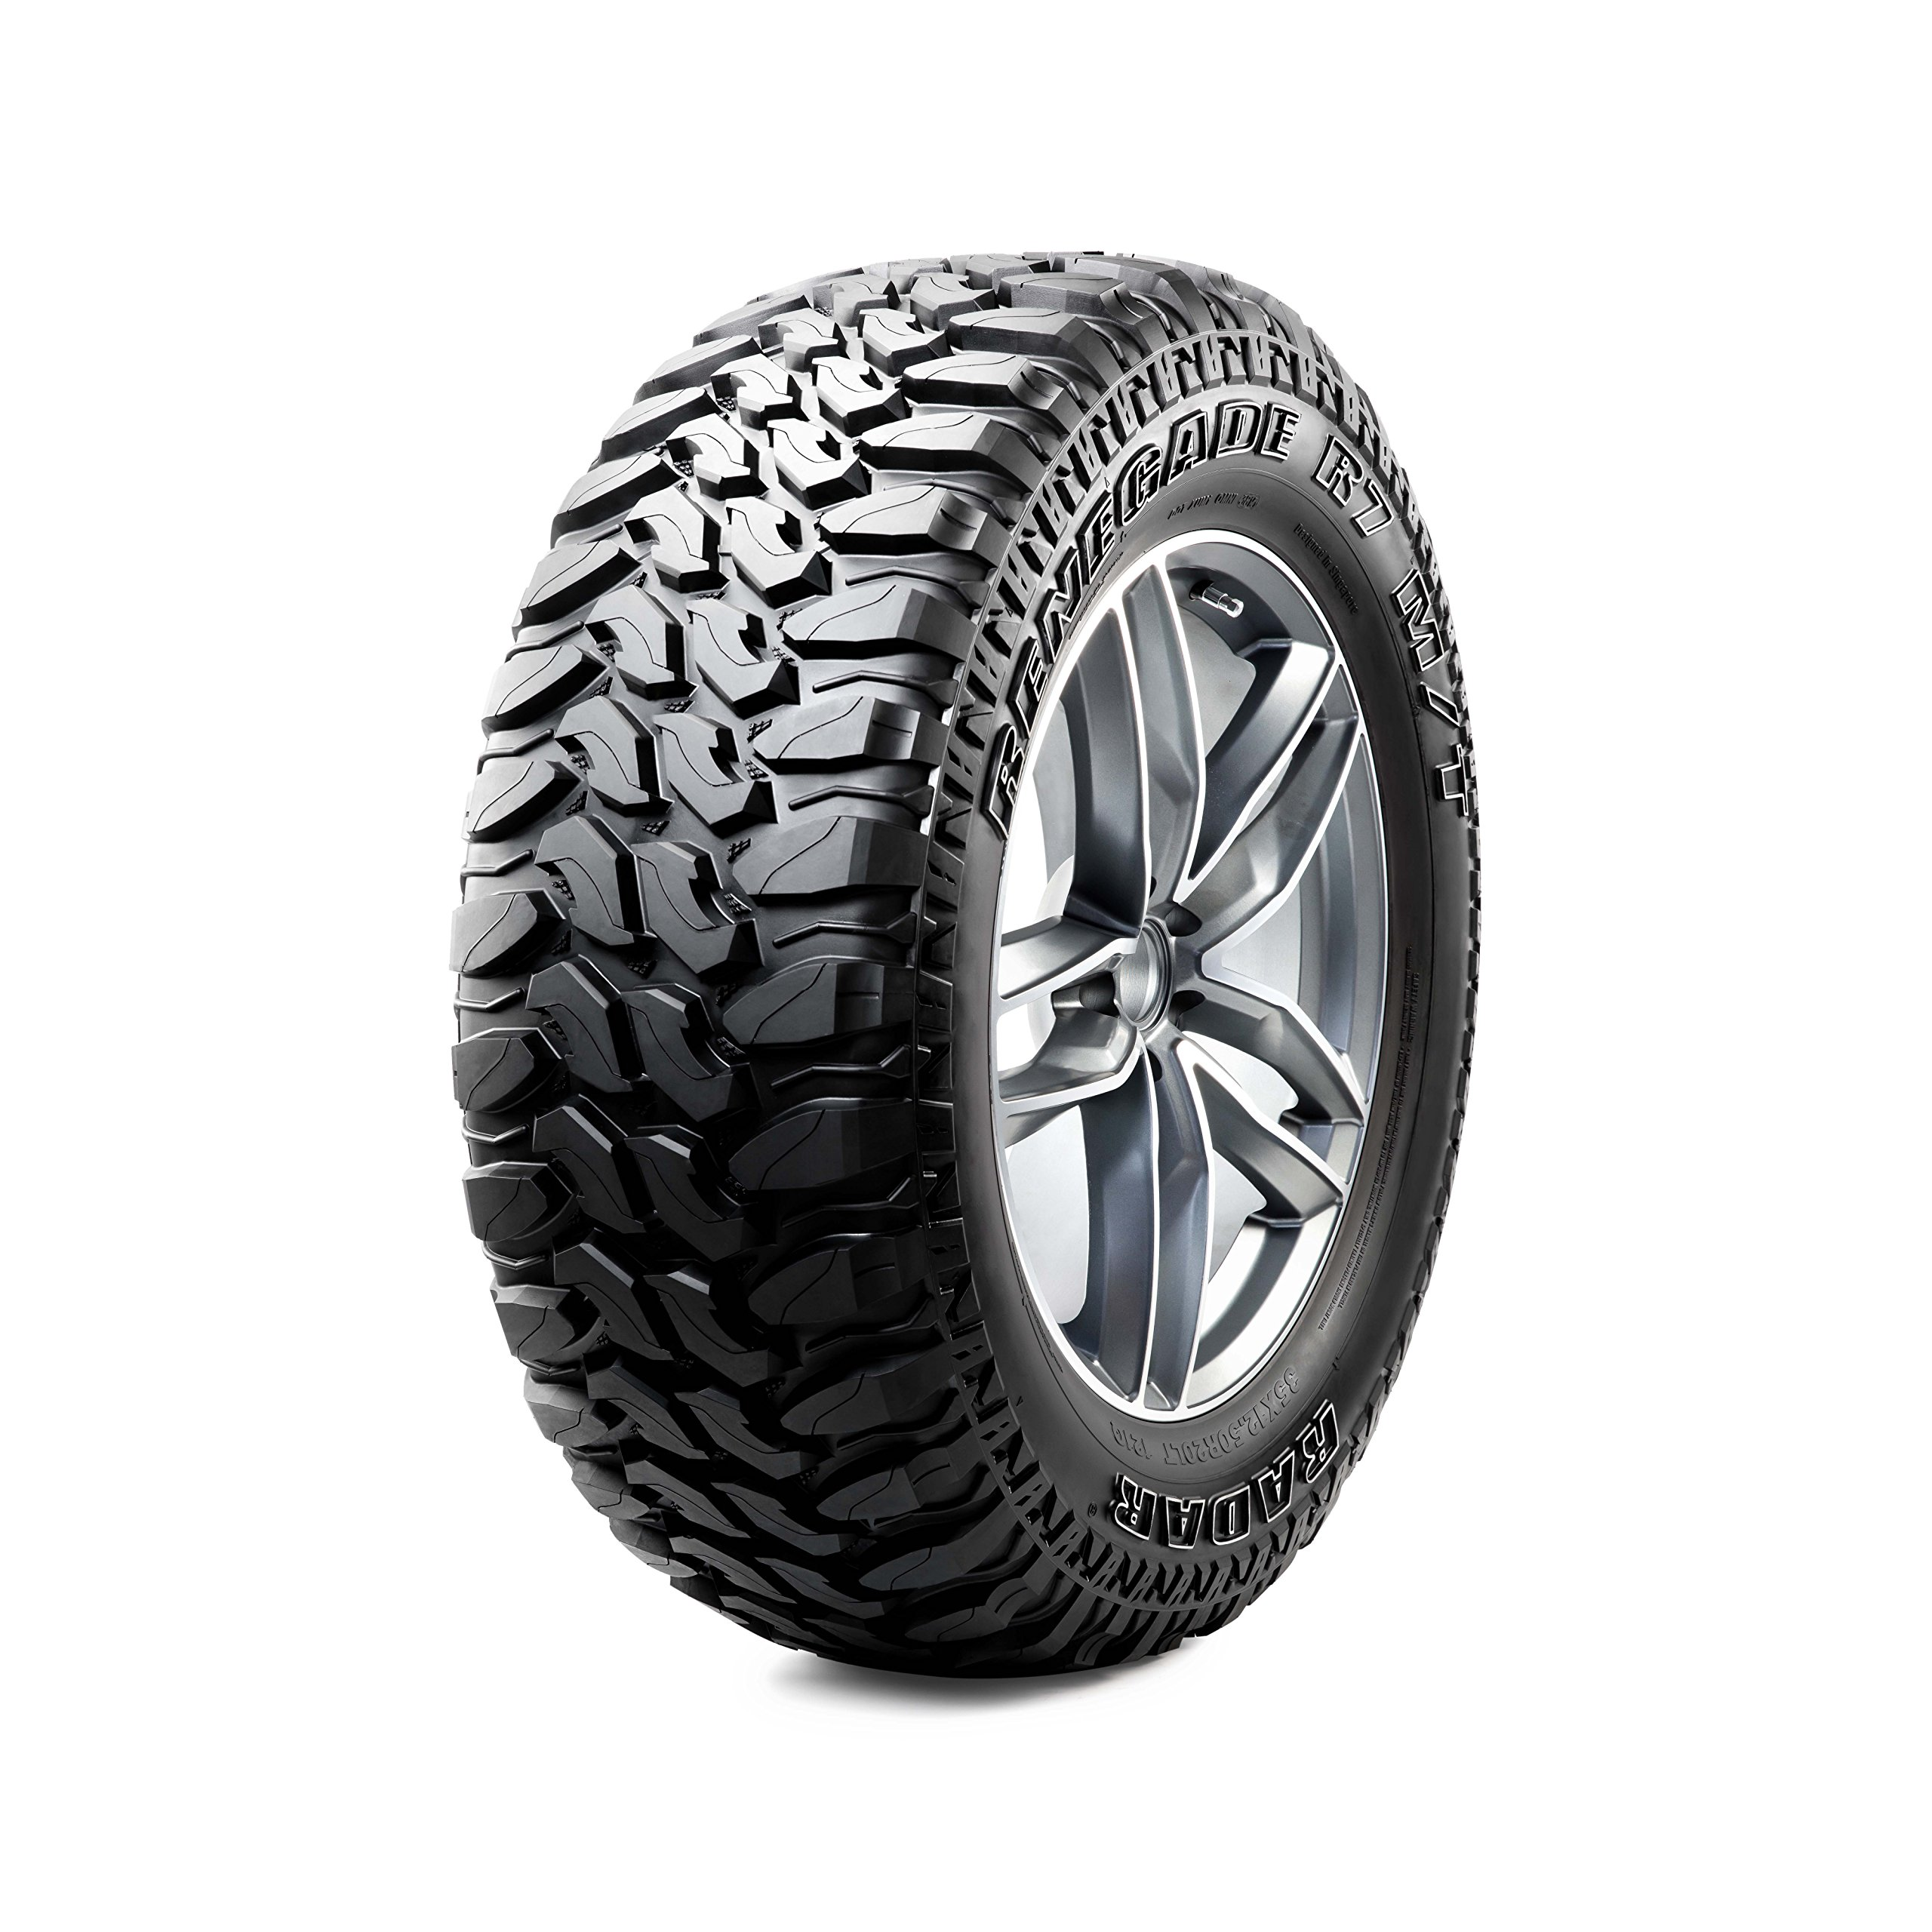 Radar Renegade R7 Mud Terrain Radial Tire - 35X12.5R17 119Q by Radar (Image #1)